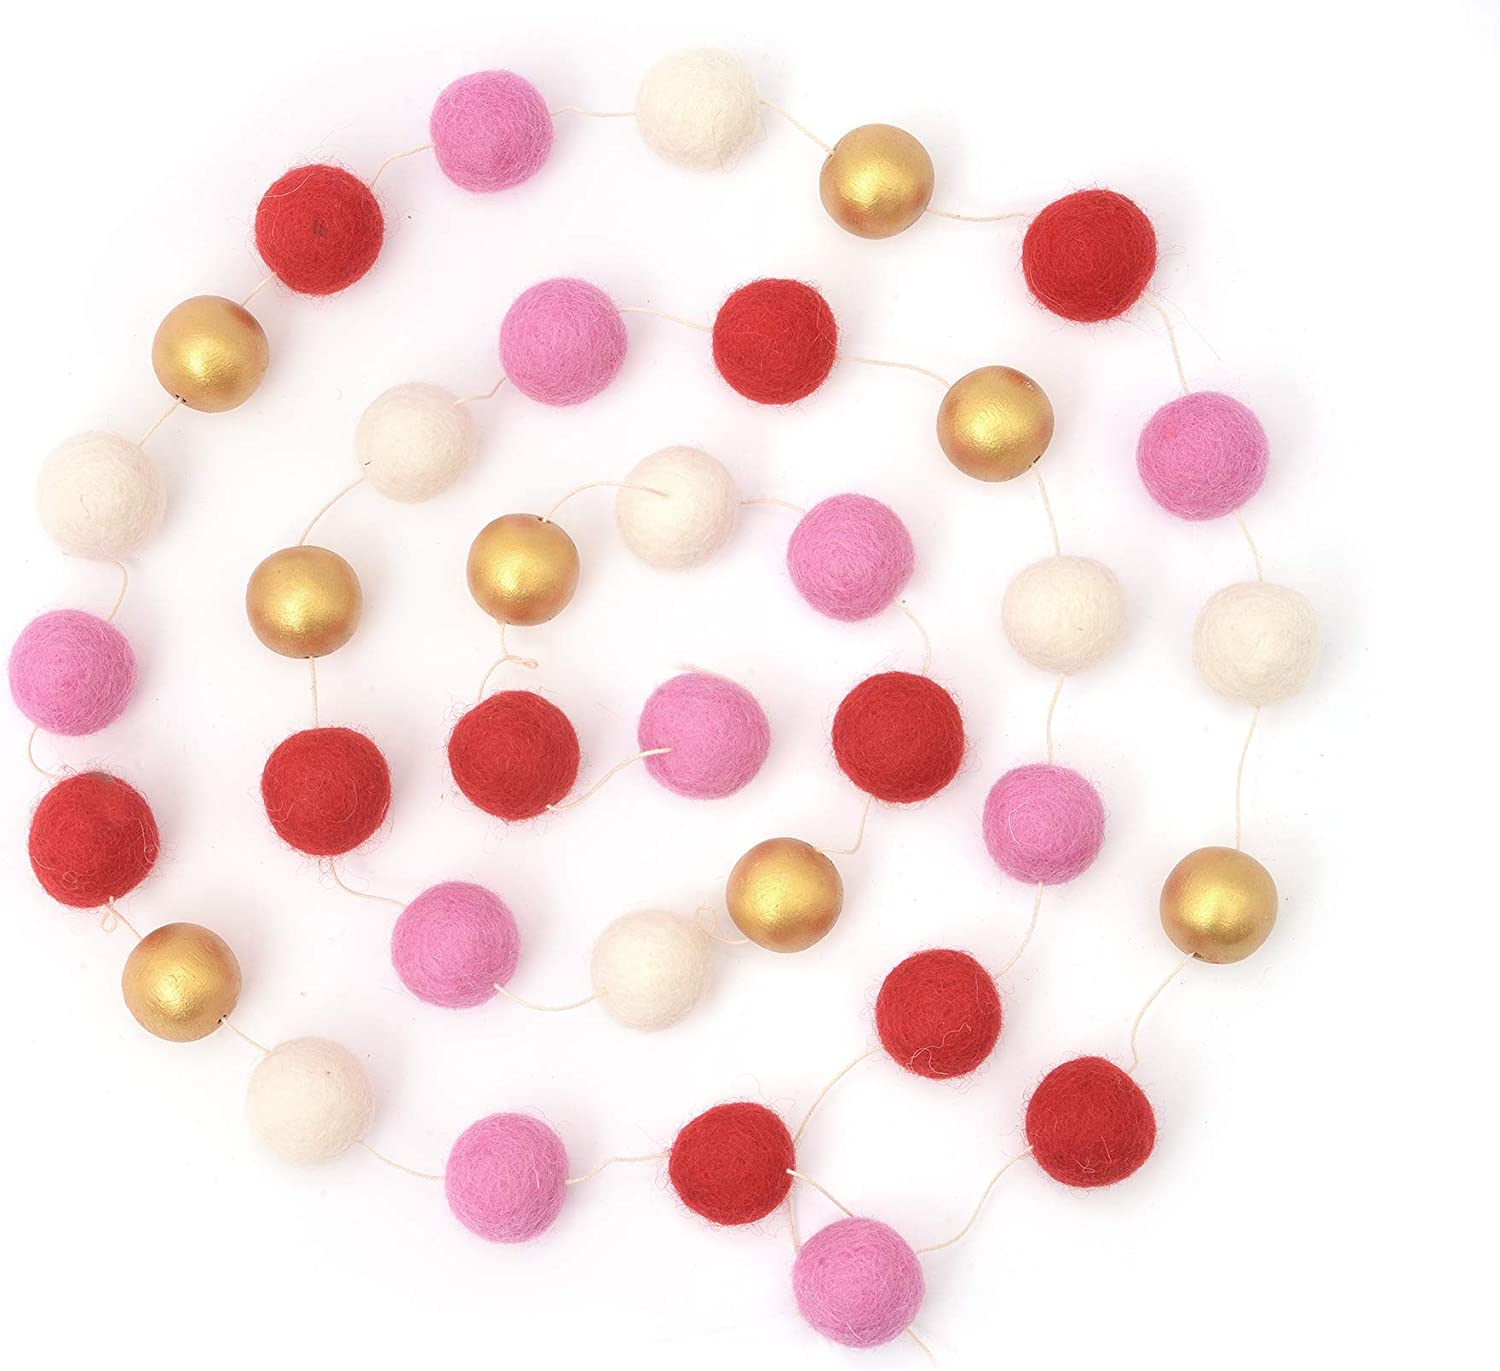 Glaciart One Felt Ball Garland - 10-Foot Decorative Wool Wall and Window Home Decor - Red, Pink, White and Gold for Christmas, Valentines, Wedding, Birthday, Baby Shower Party - 39 Balls